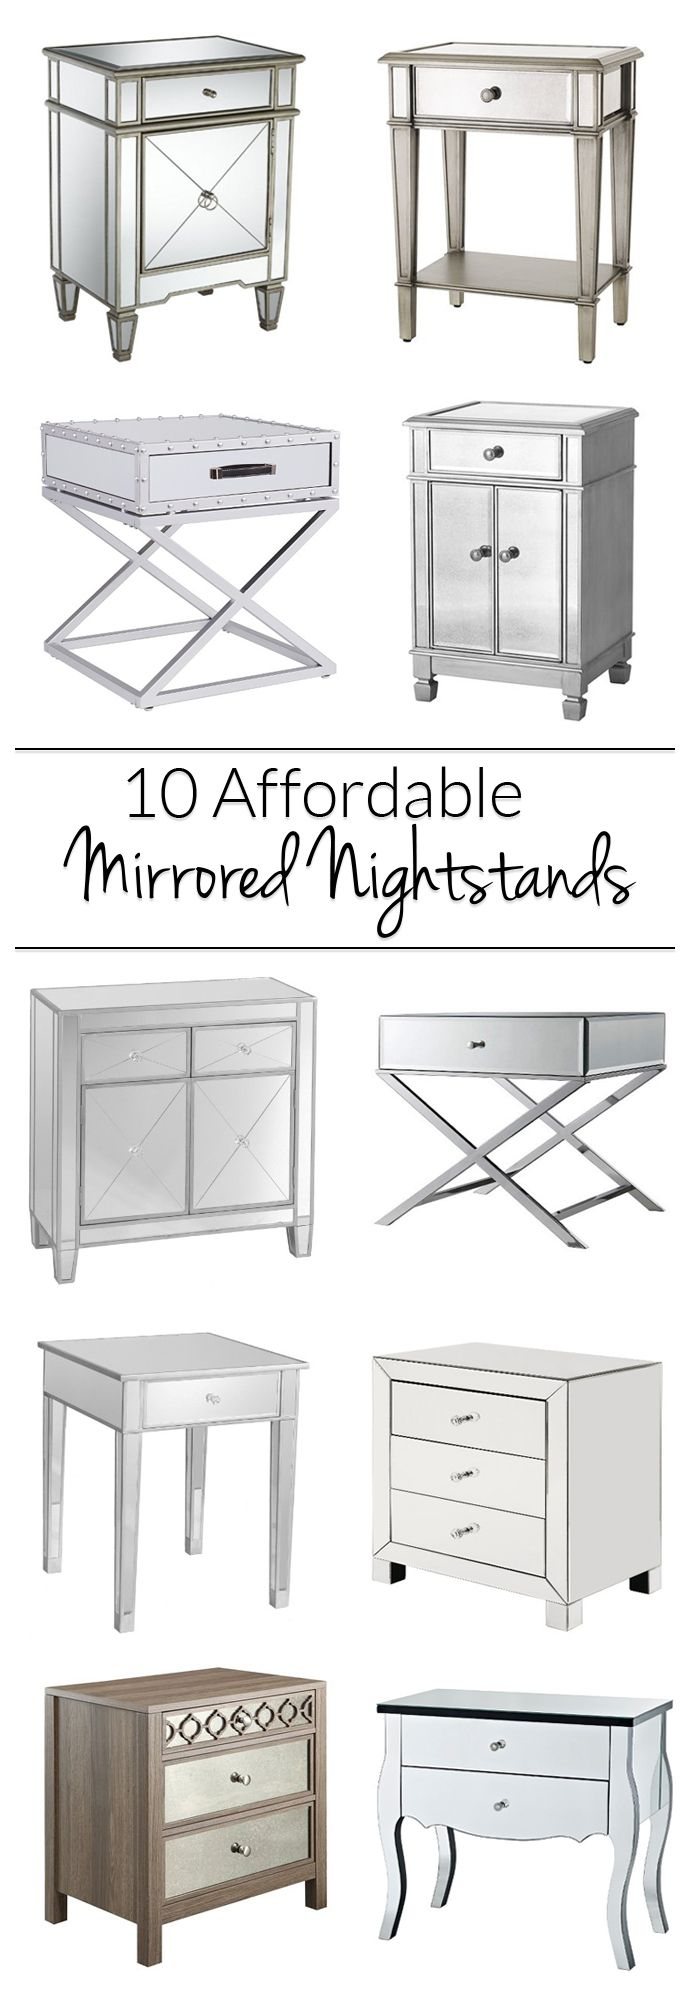 The Hunt for a Cheap Mirrored Nightstand - Polished Habitat